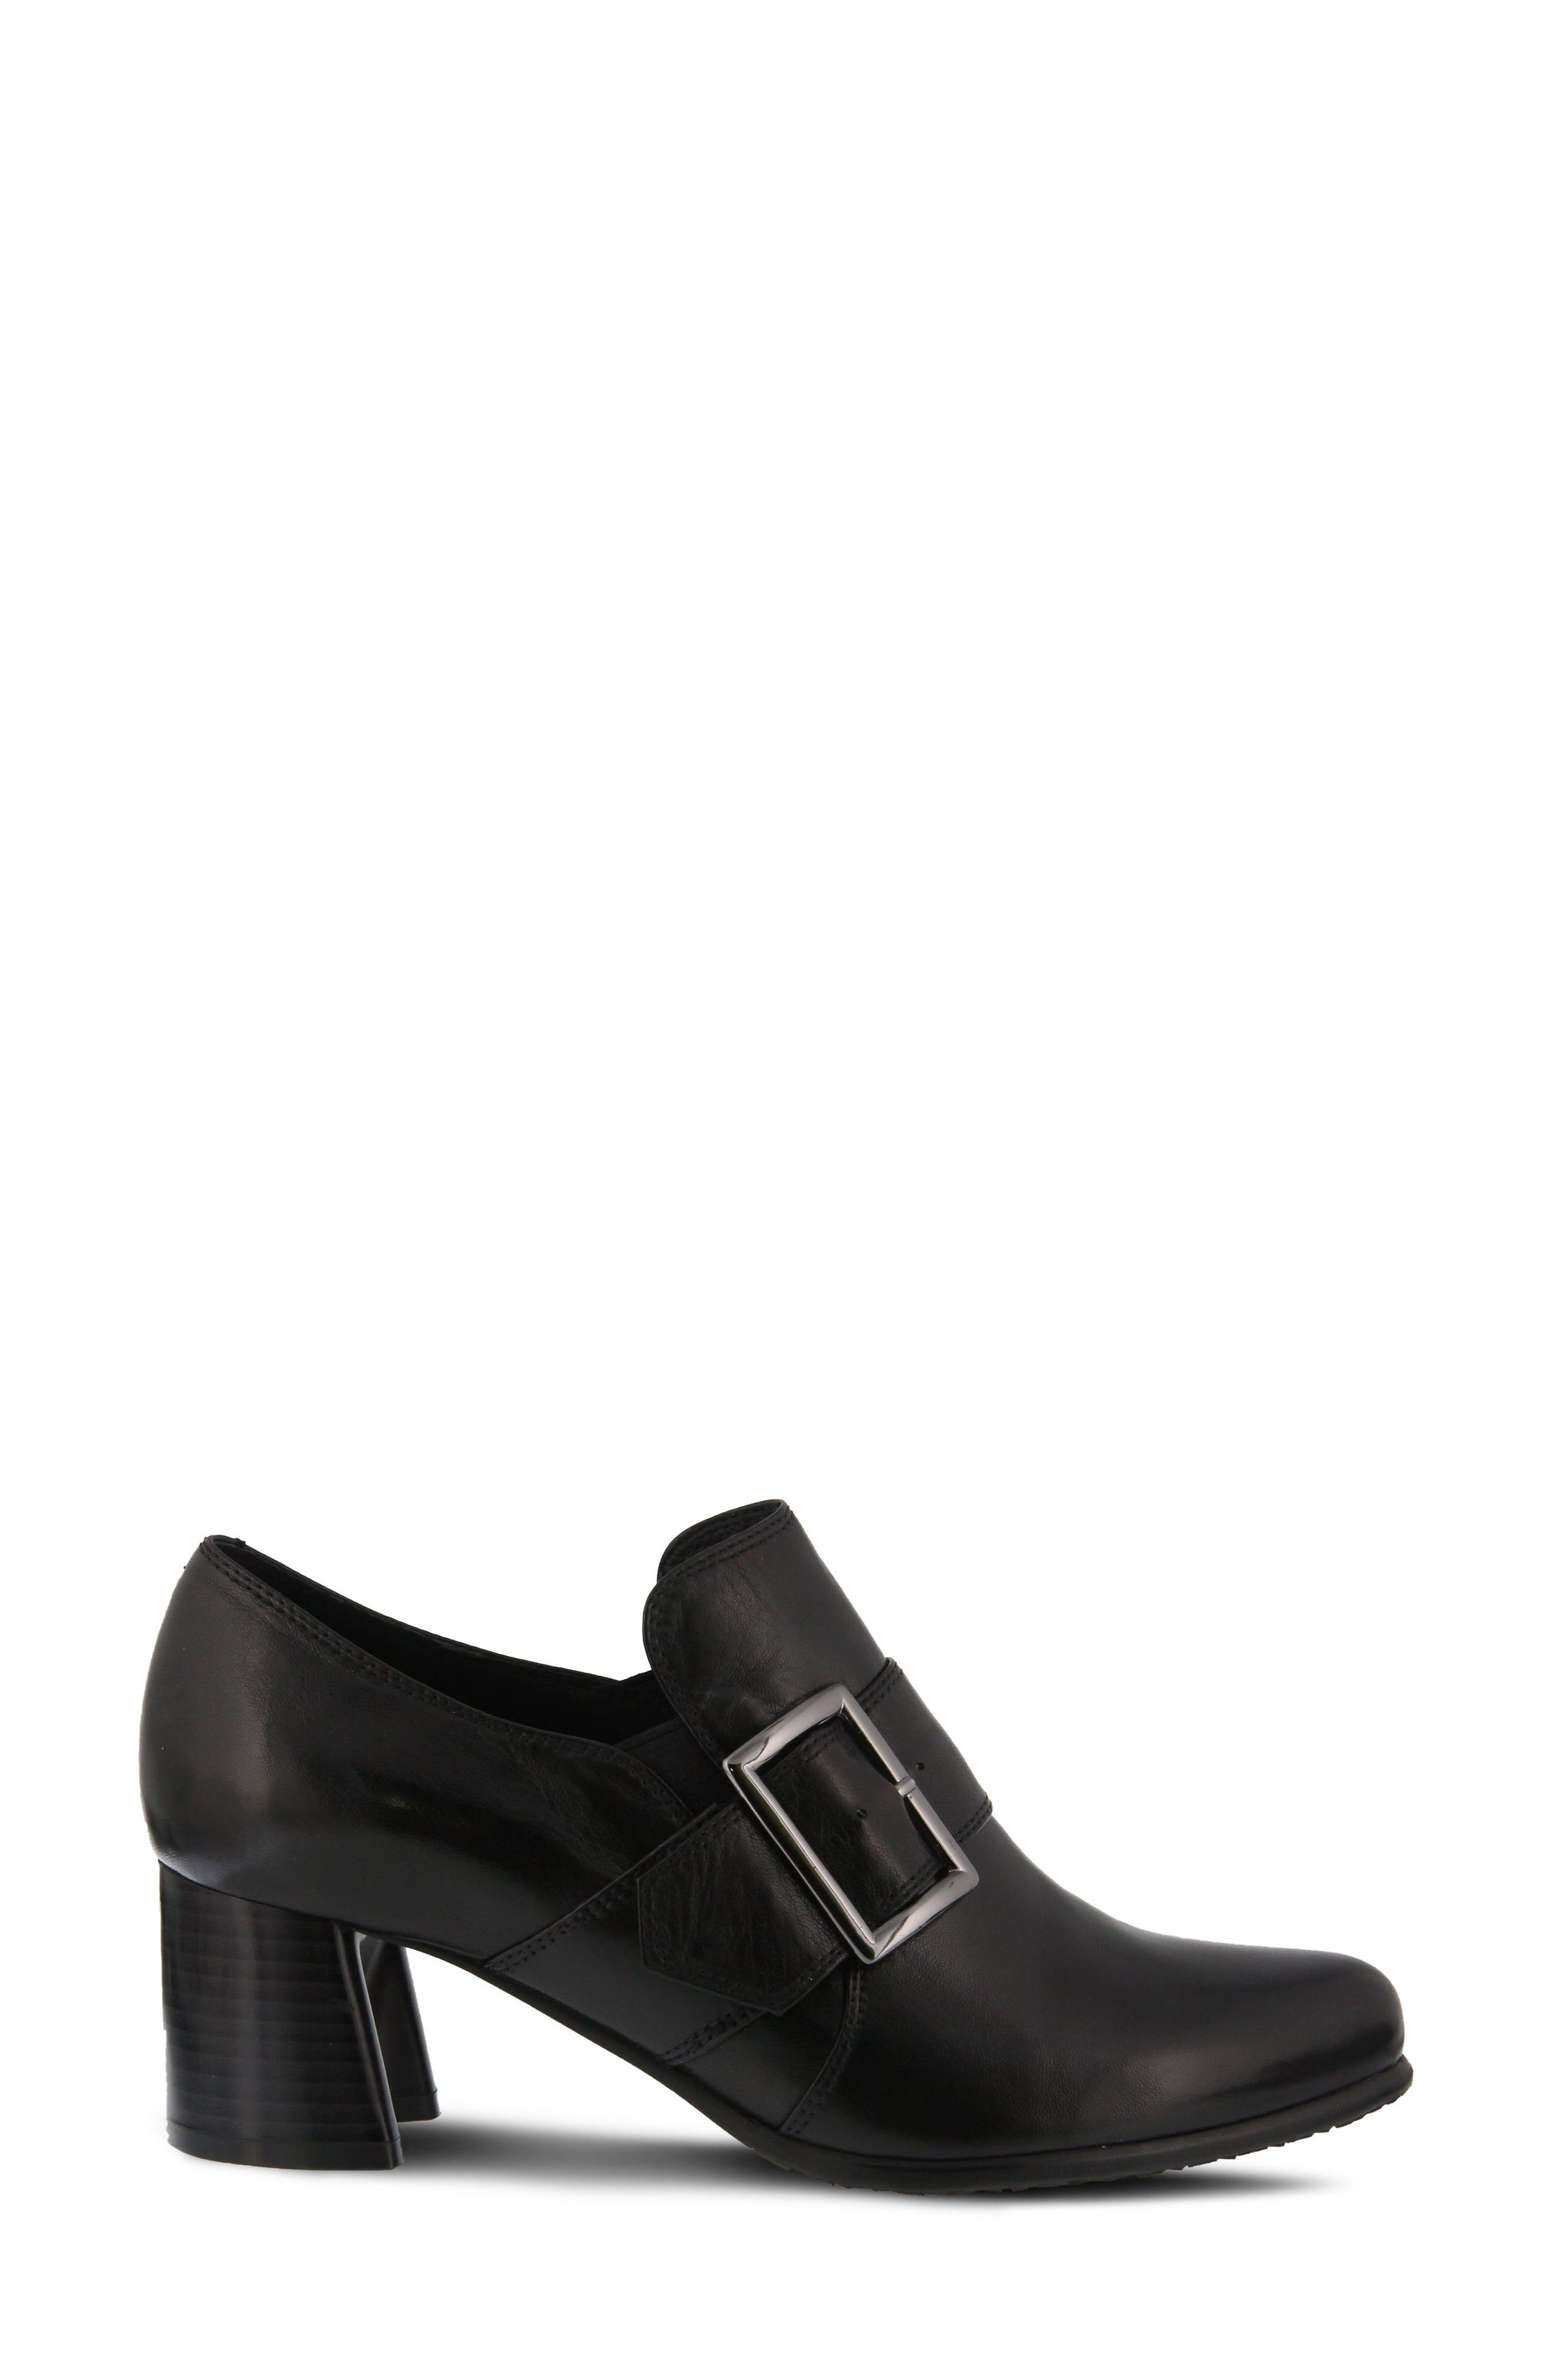 Dayana Bootie,                             Alternate thumbnail 3, color,                             BLACK LEATHER